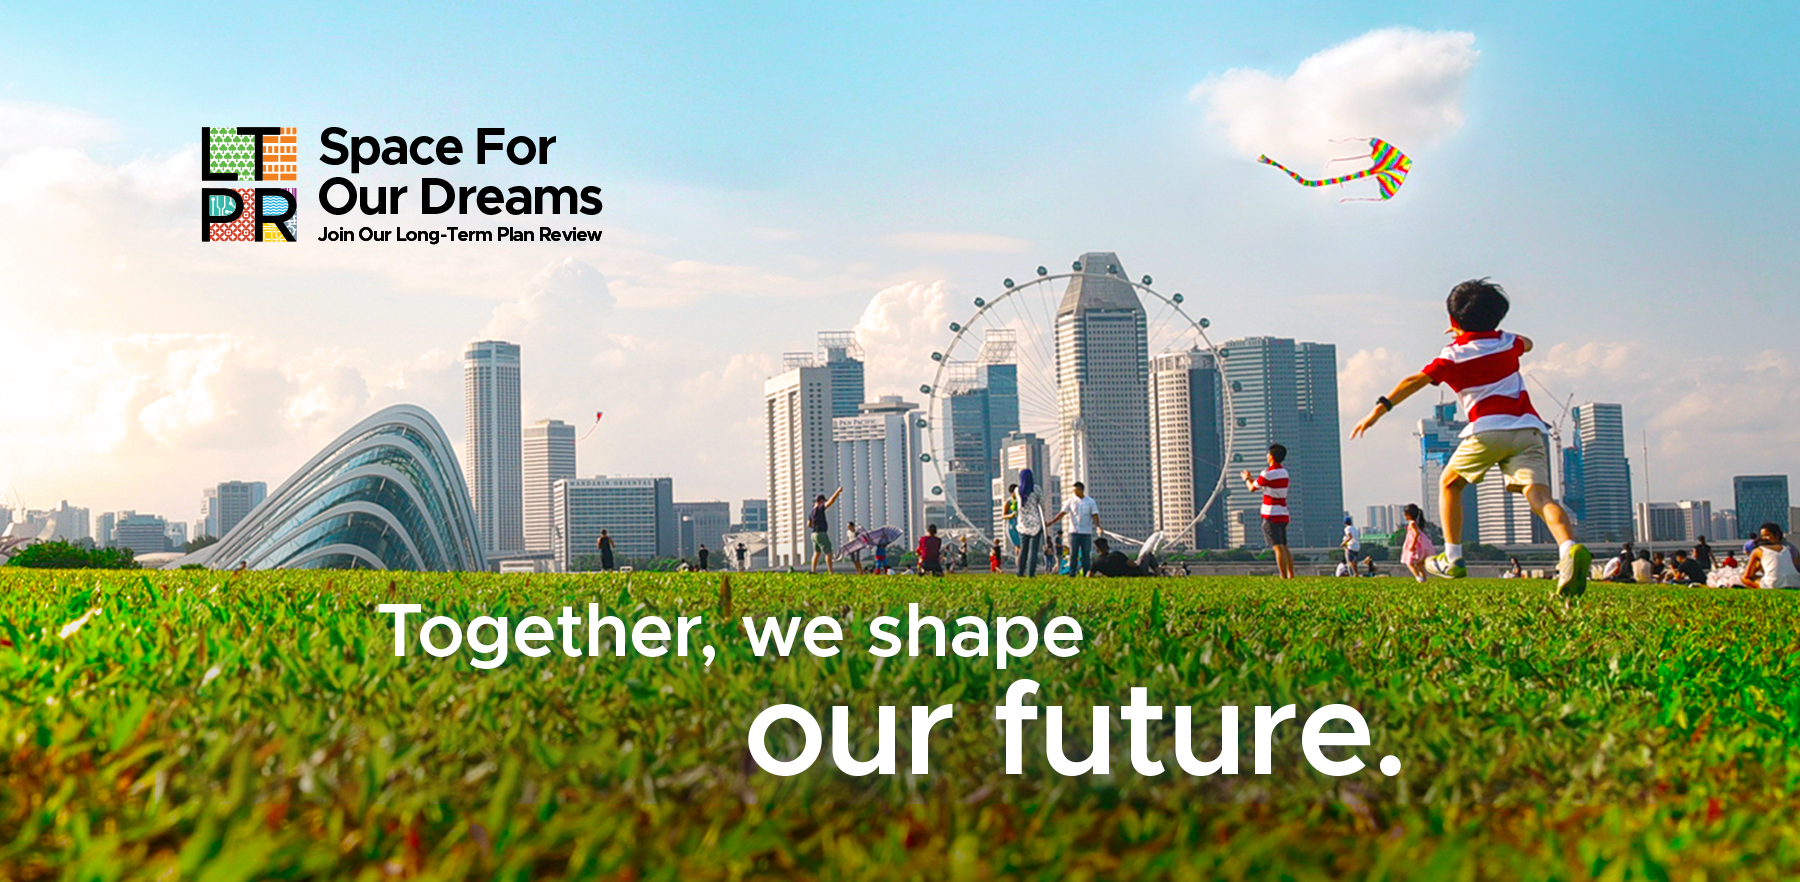 Play a part in shaping Singapore's future! URA has launched a year-long public engagement exercise for the Long-Term Plan Review, where you can share your aspirations and needs for our future city. This will help URA to develop resilient, flexible, and inclusive long-term plans based on your feedback in this Long-Term Plan Review. Share your views on shaping our future city in the online poll today.